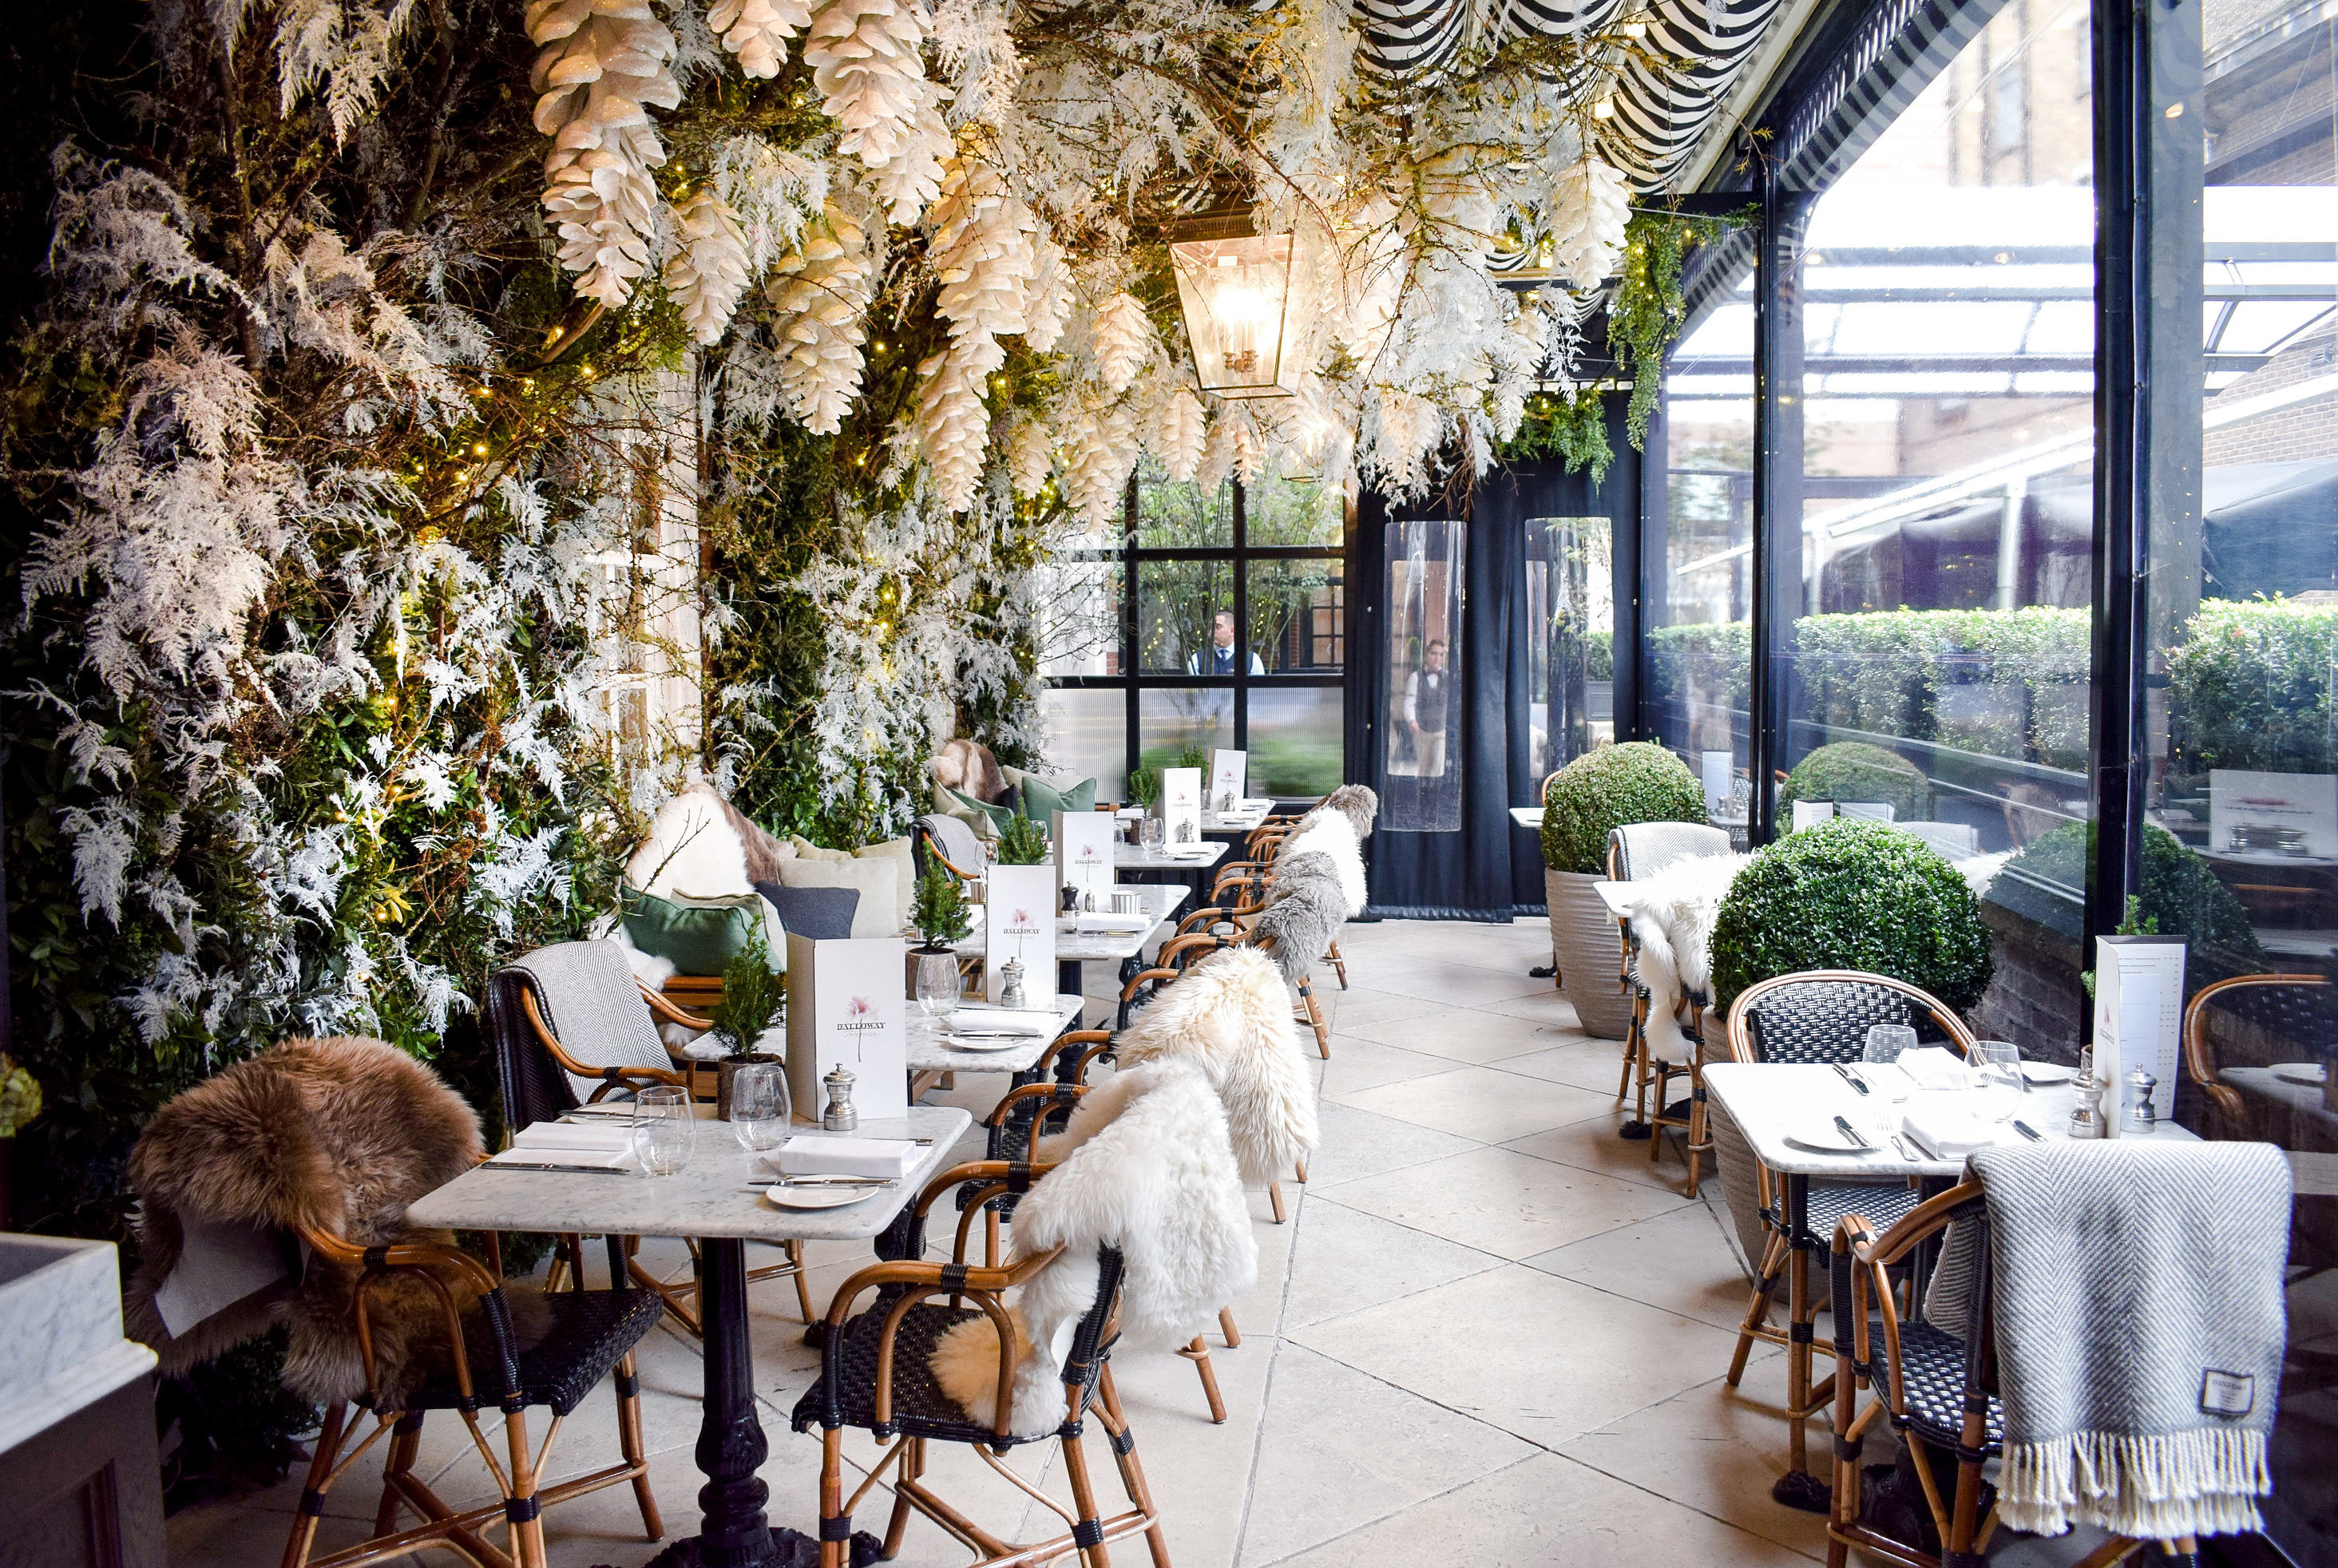 Food + Drink Trip Ideas interior design home plant restaurant tree outdoor structure Winter flower window furniture several